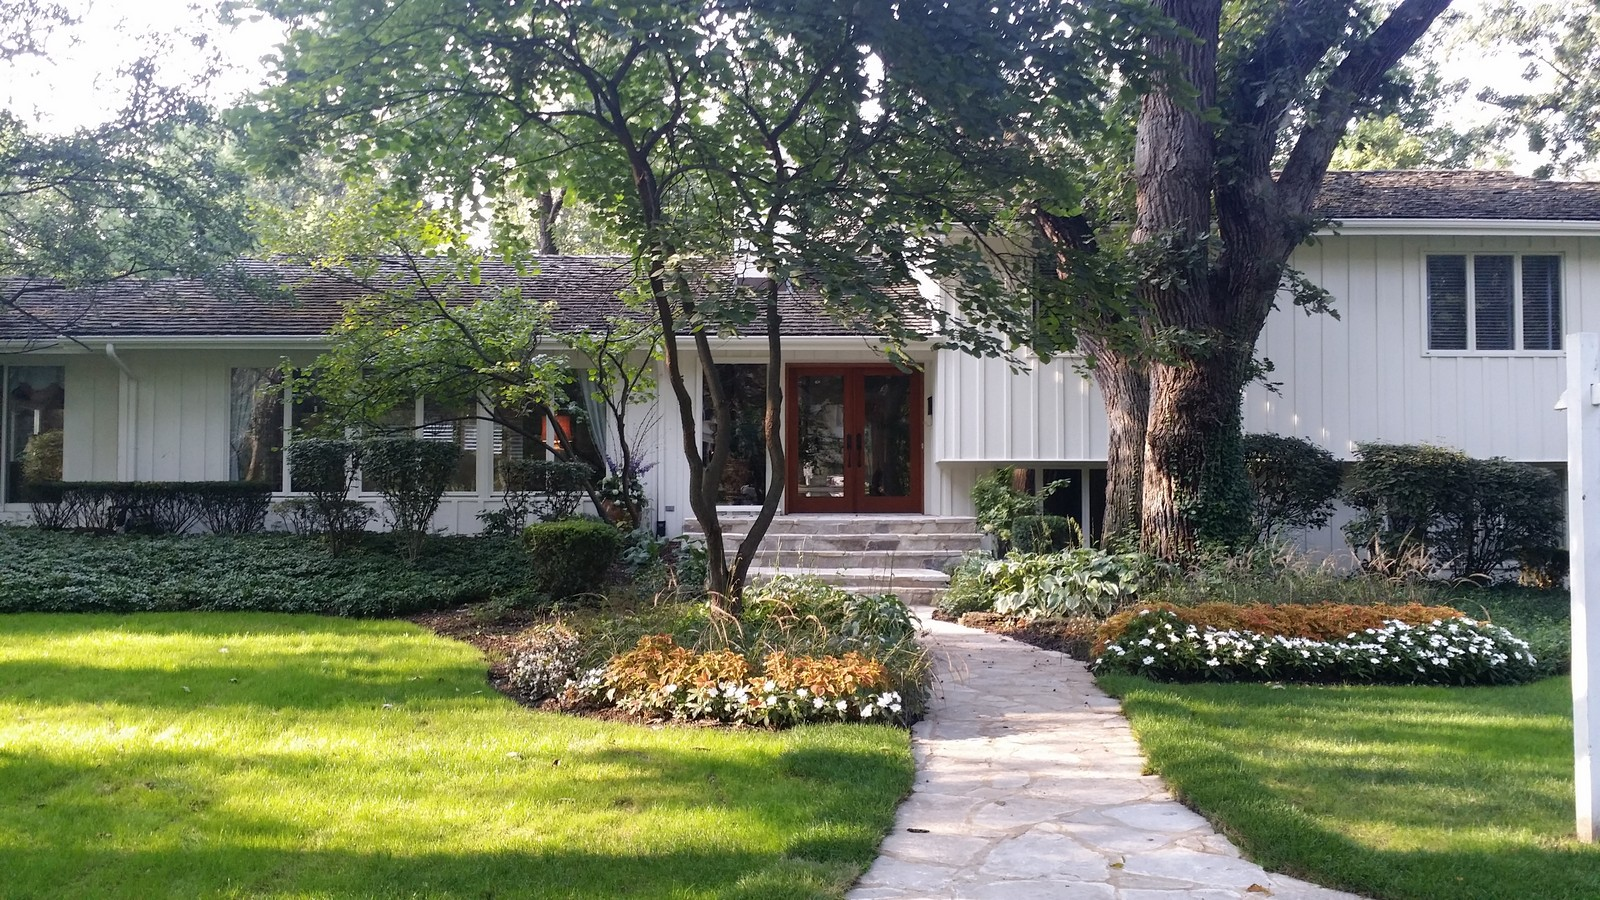 Single Family Home for Sale at 511 E. Third St. 511 E Third St Hinsdale, Illinois 60521 United States